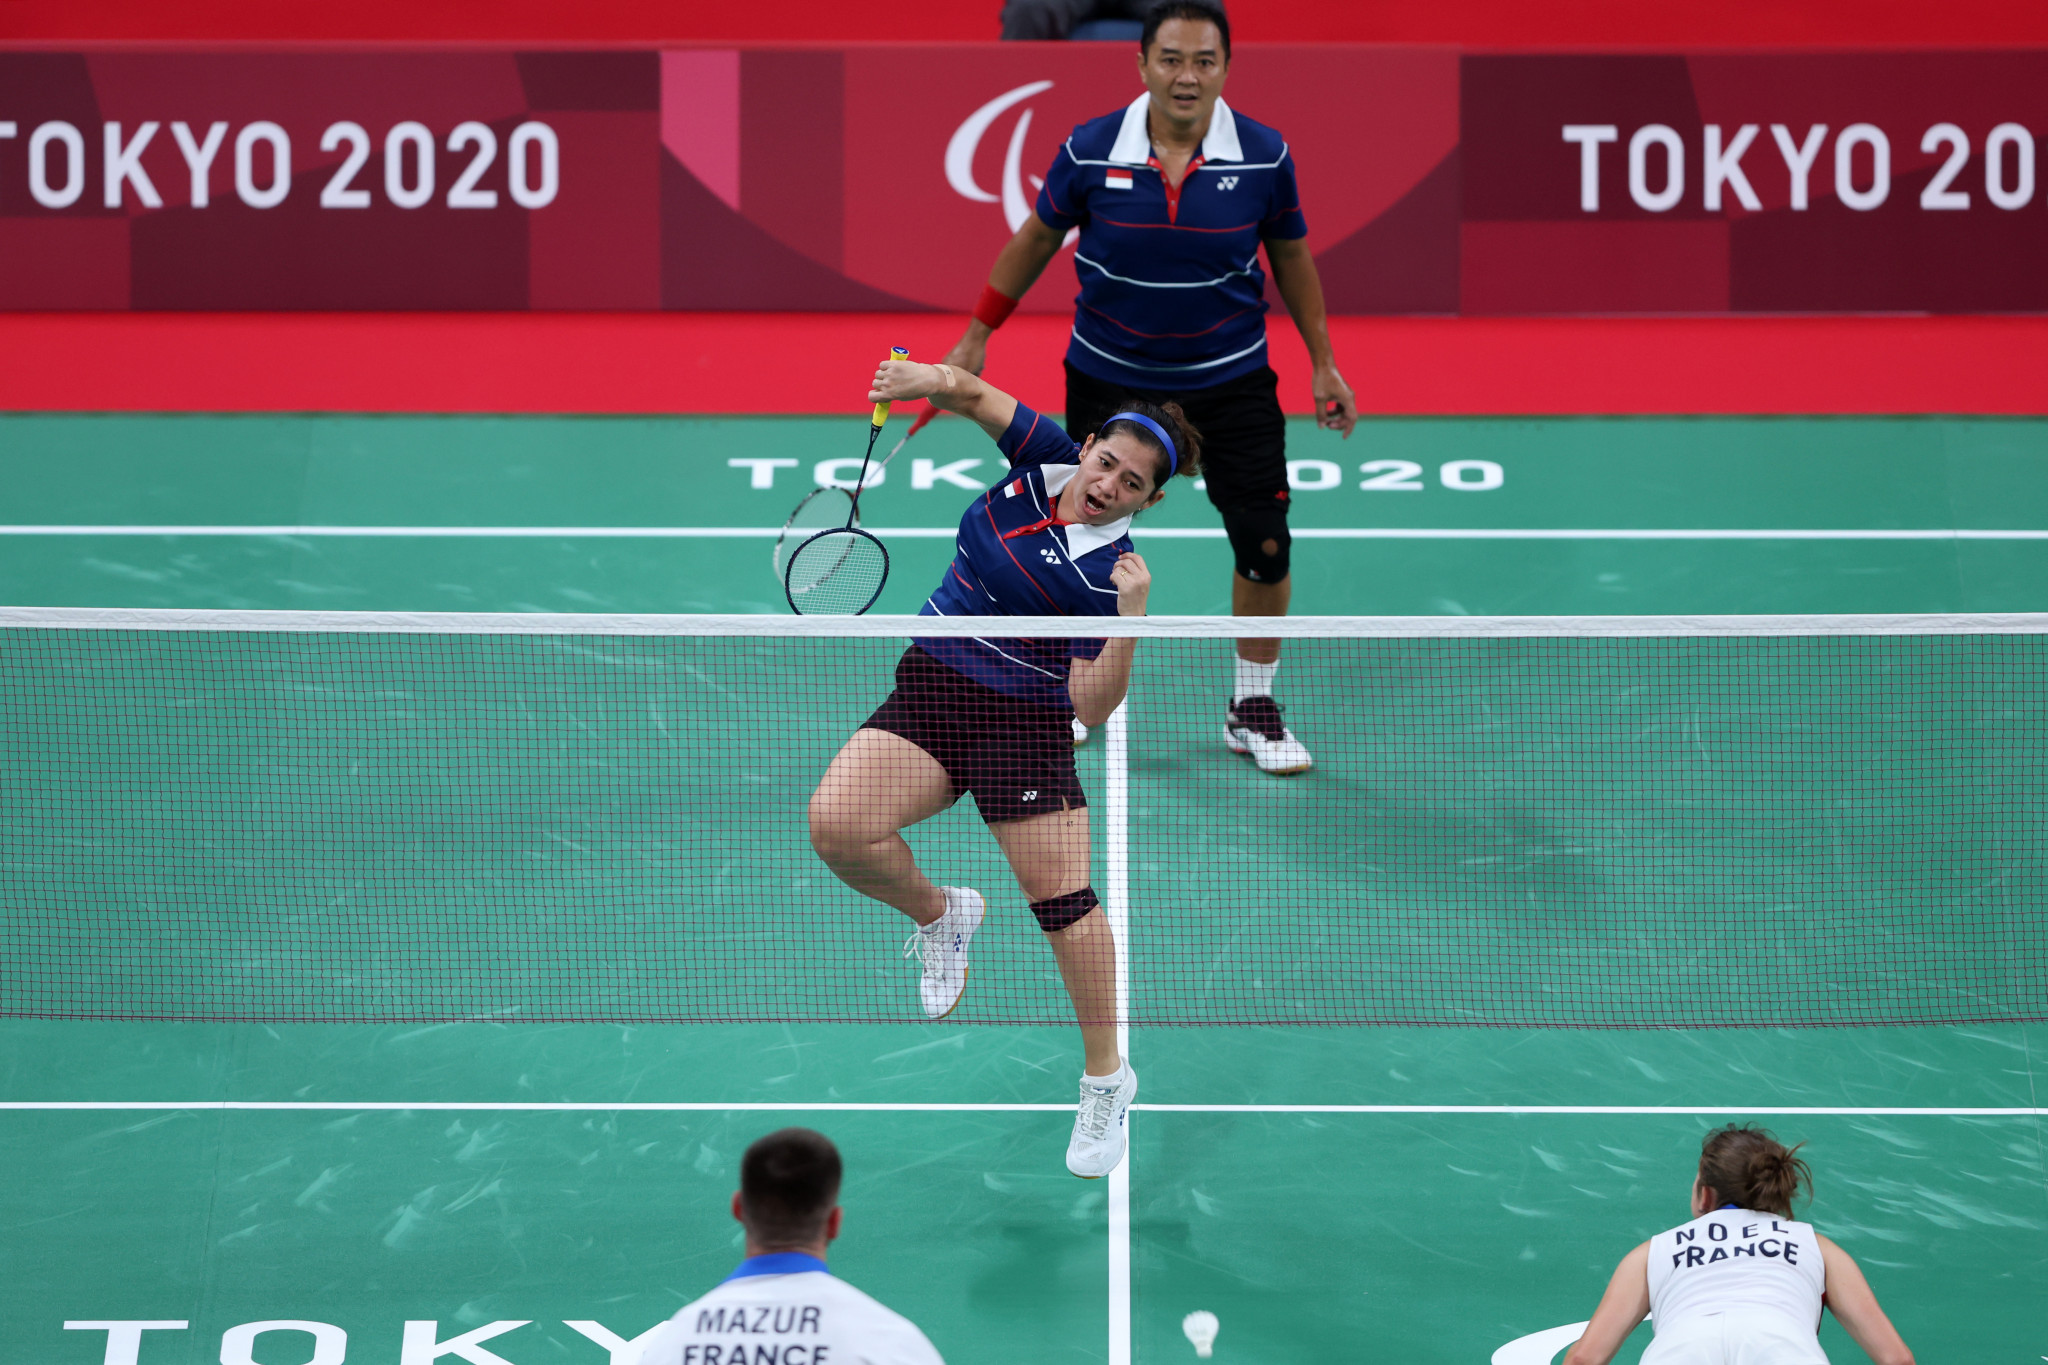 Indonesia's Hary Susanto and Leani Ratri Oktila won the final gold medal of Tokyo 2020 ©Getty Images